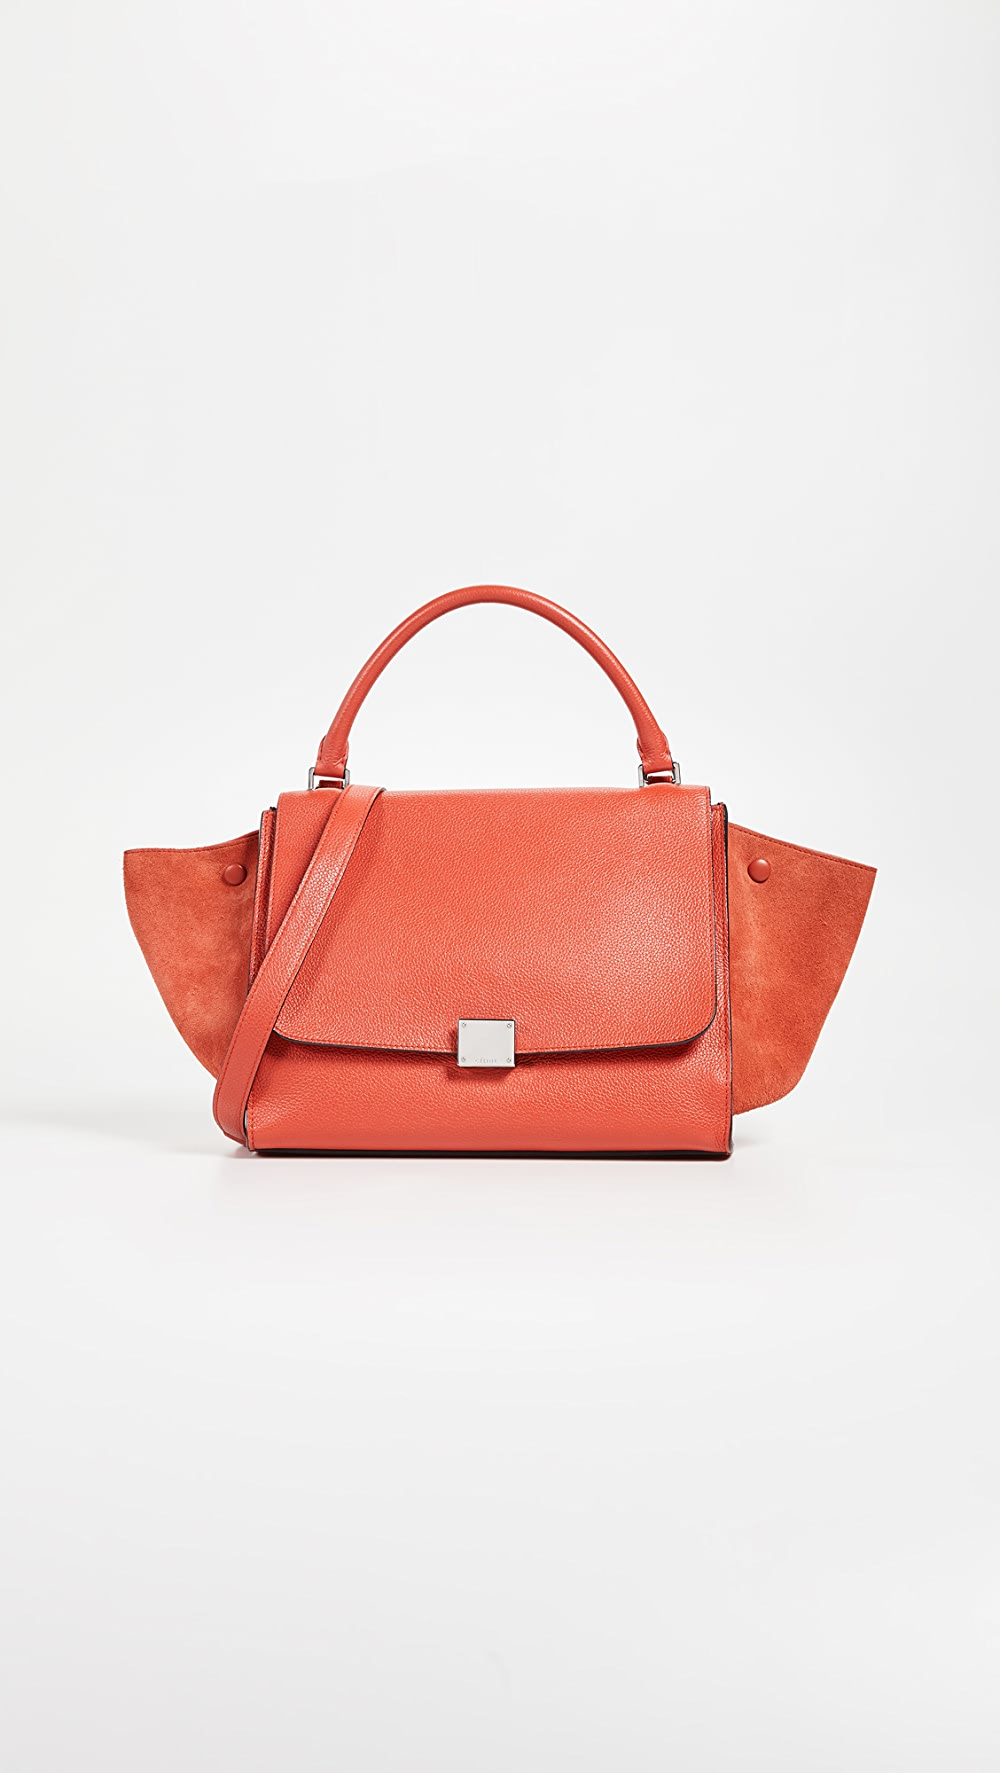 Beautiful What Goes Around Comes Around - Celine Leather Trapeze Bag Elegant Appearance